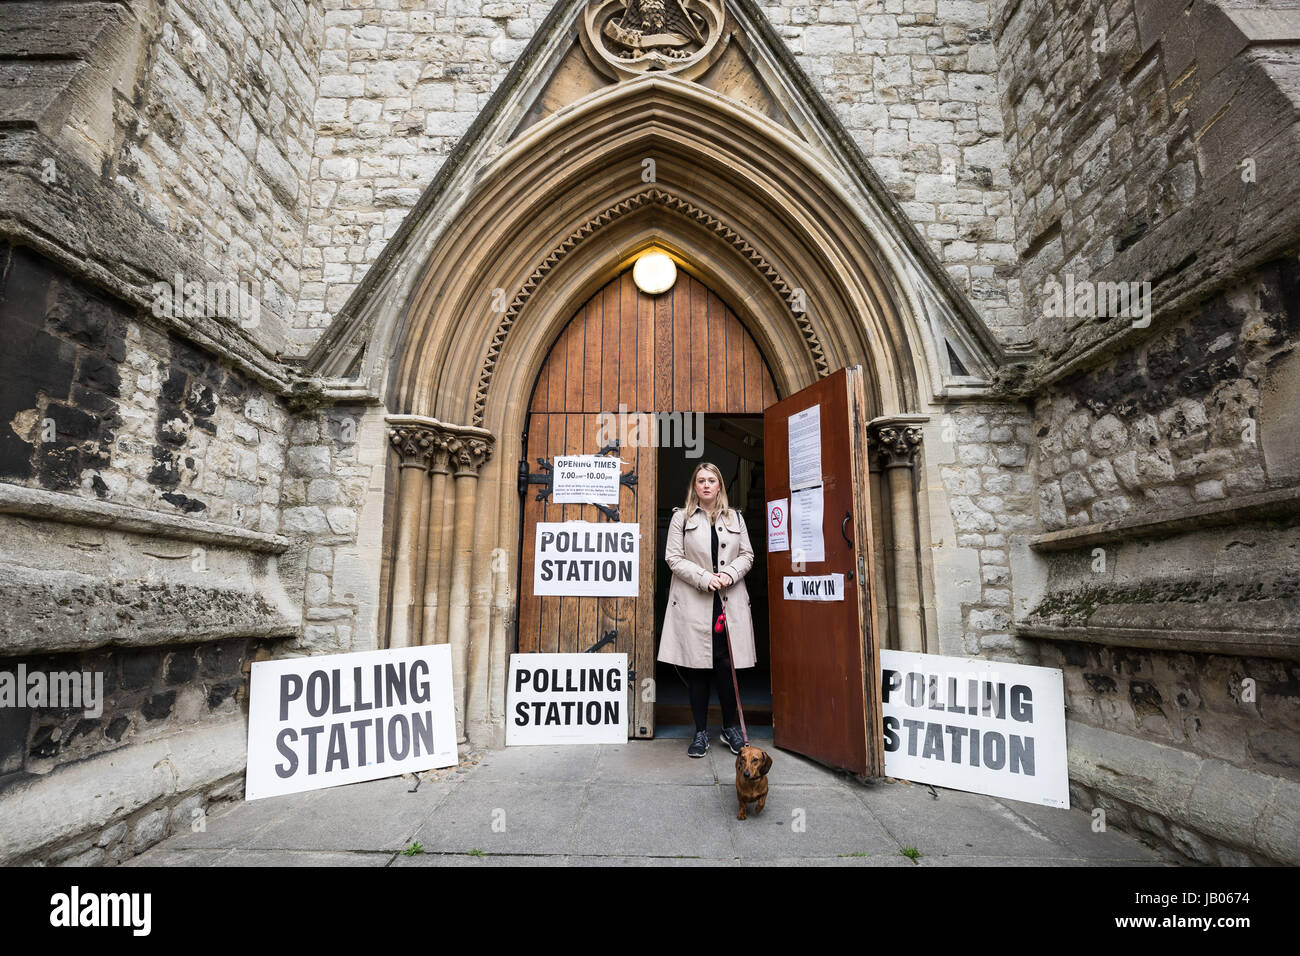 London, UK. 8th June, 2017. George the sausage dog attends the polling station at St. John's Holy Trinity Church - Stock Image